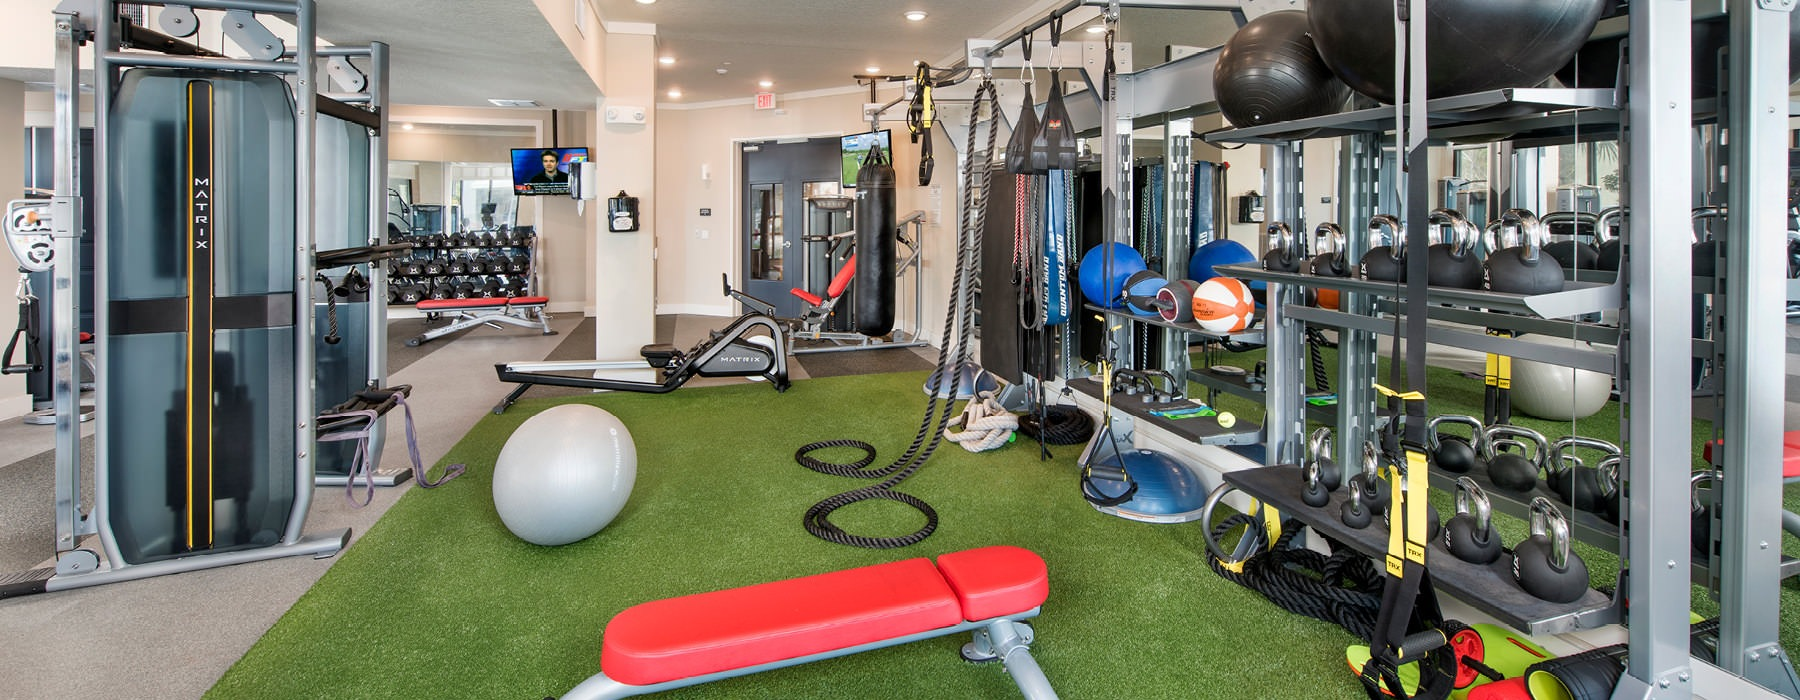 spacious, well lit fitness center